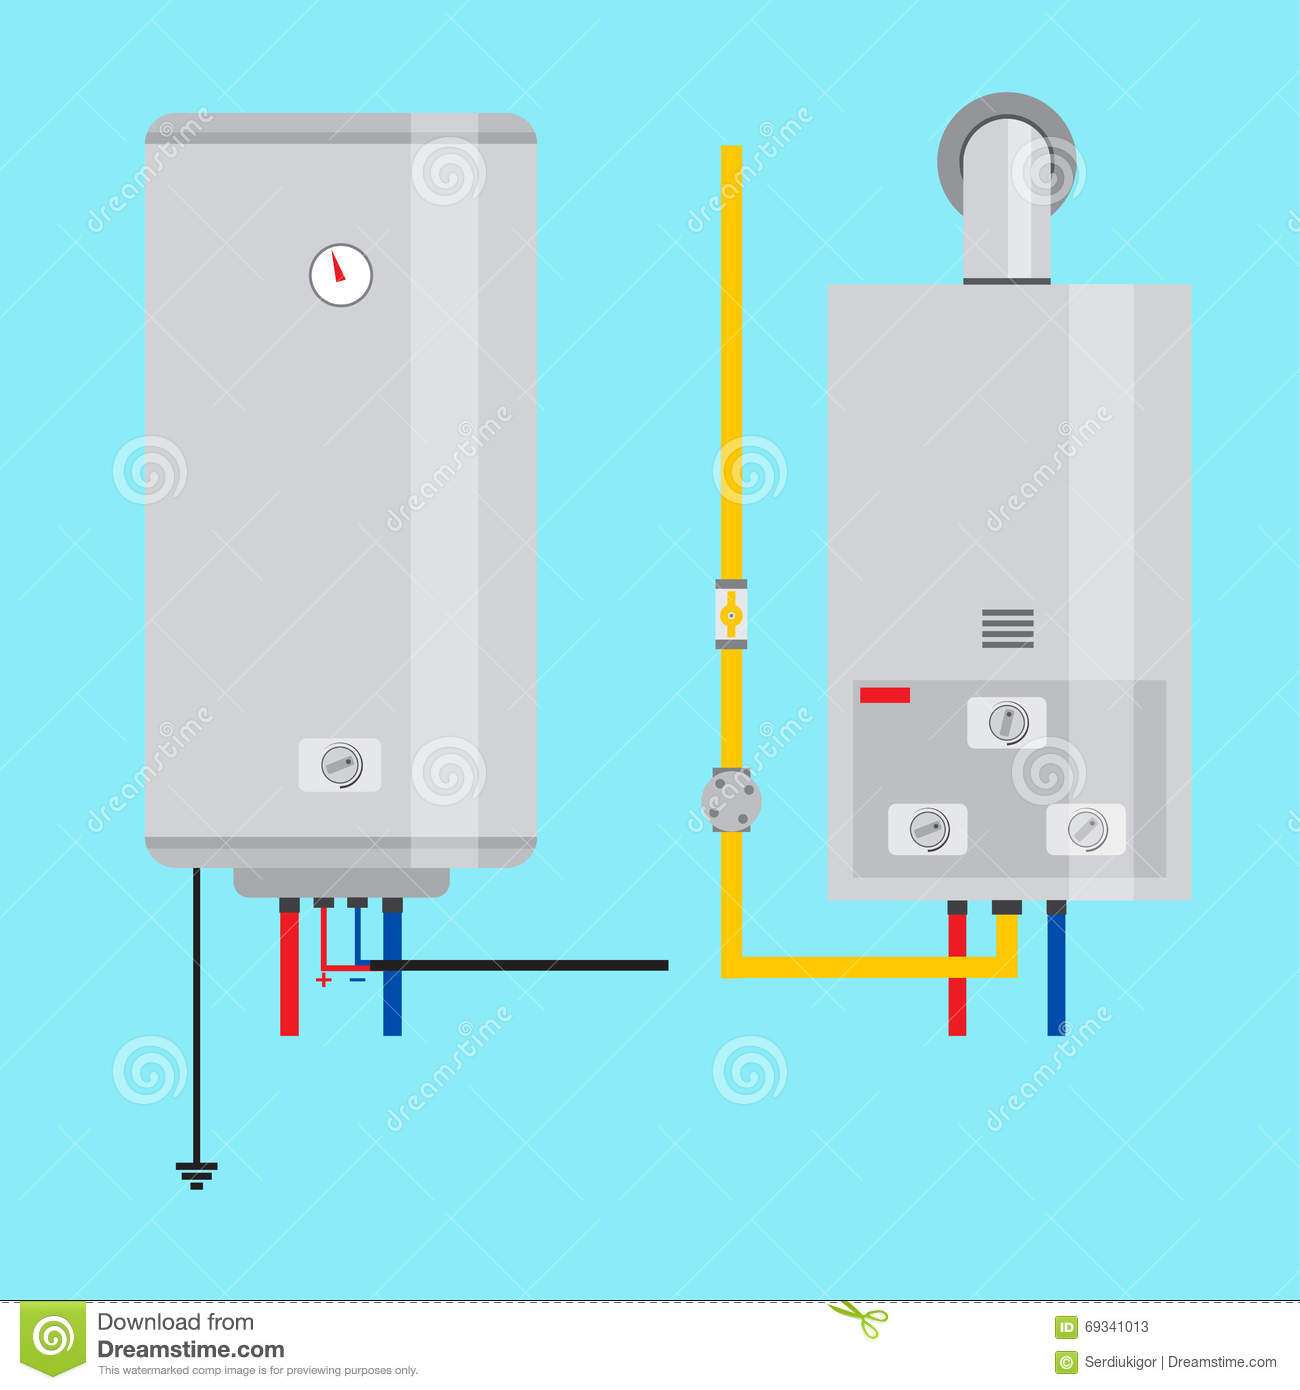 Calentador electrico o gas amazing calentador electrico y for Calentador a gas o electrico